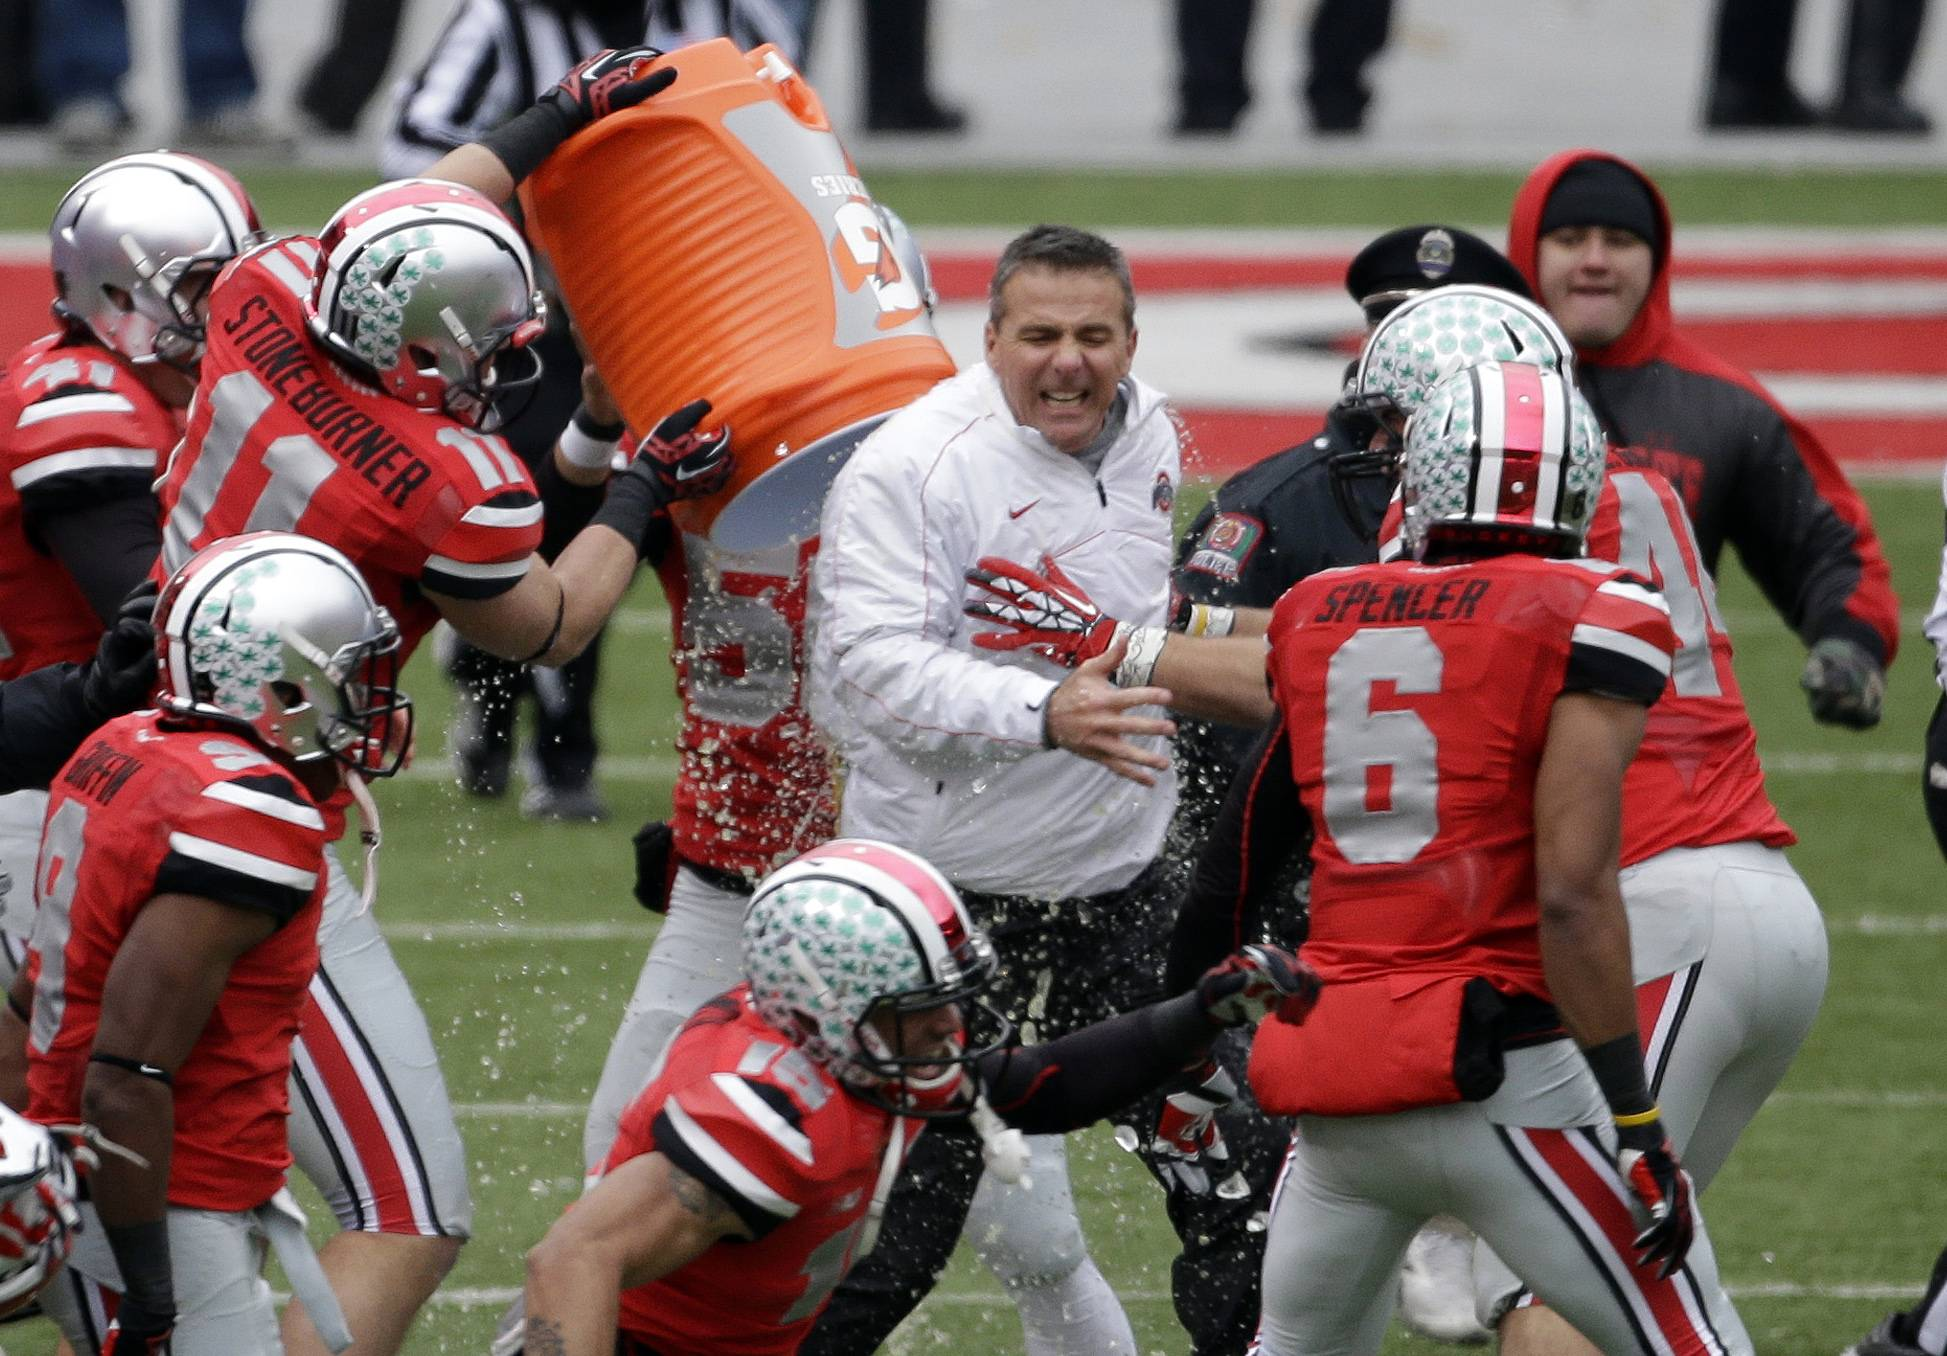 Ohio State completes undefeated season, beats Michigan